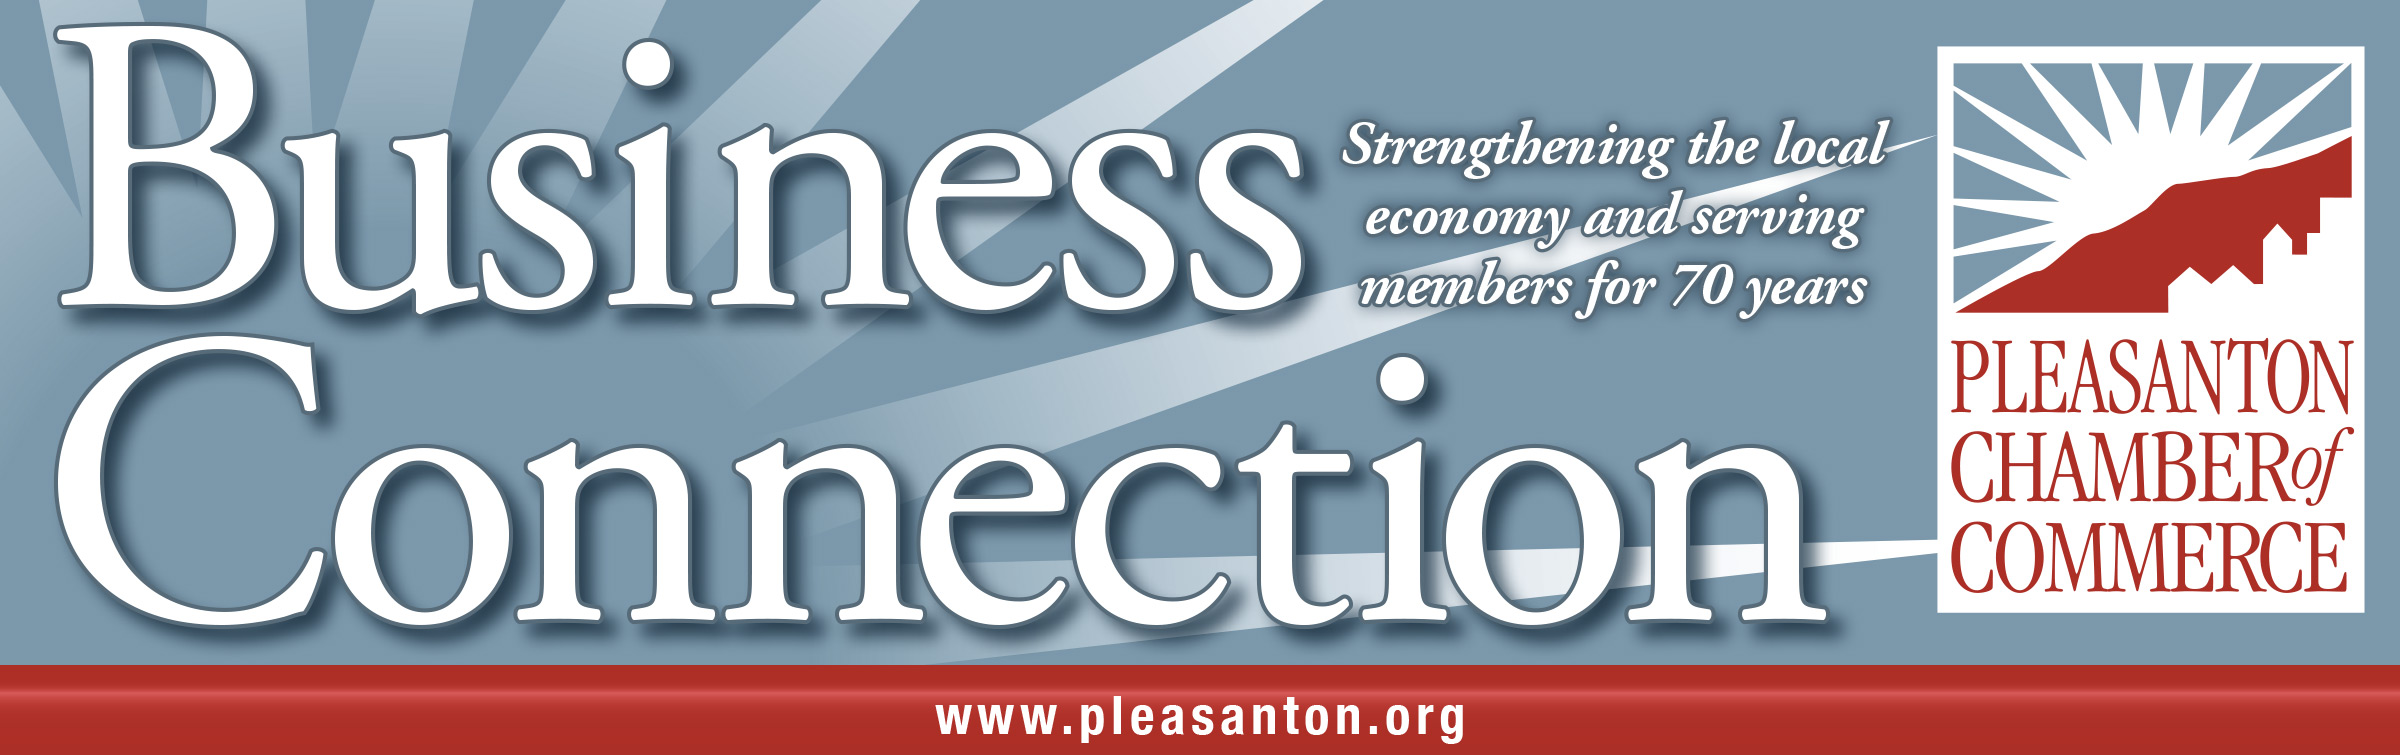 Business-Connection header